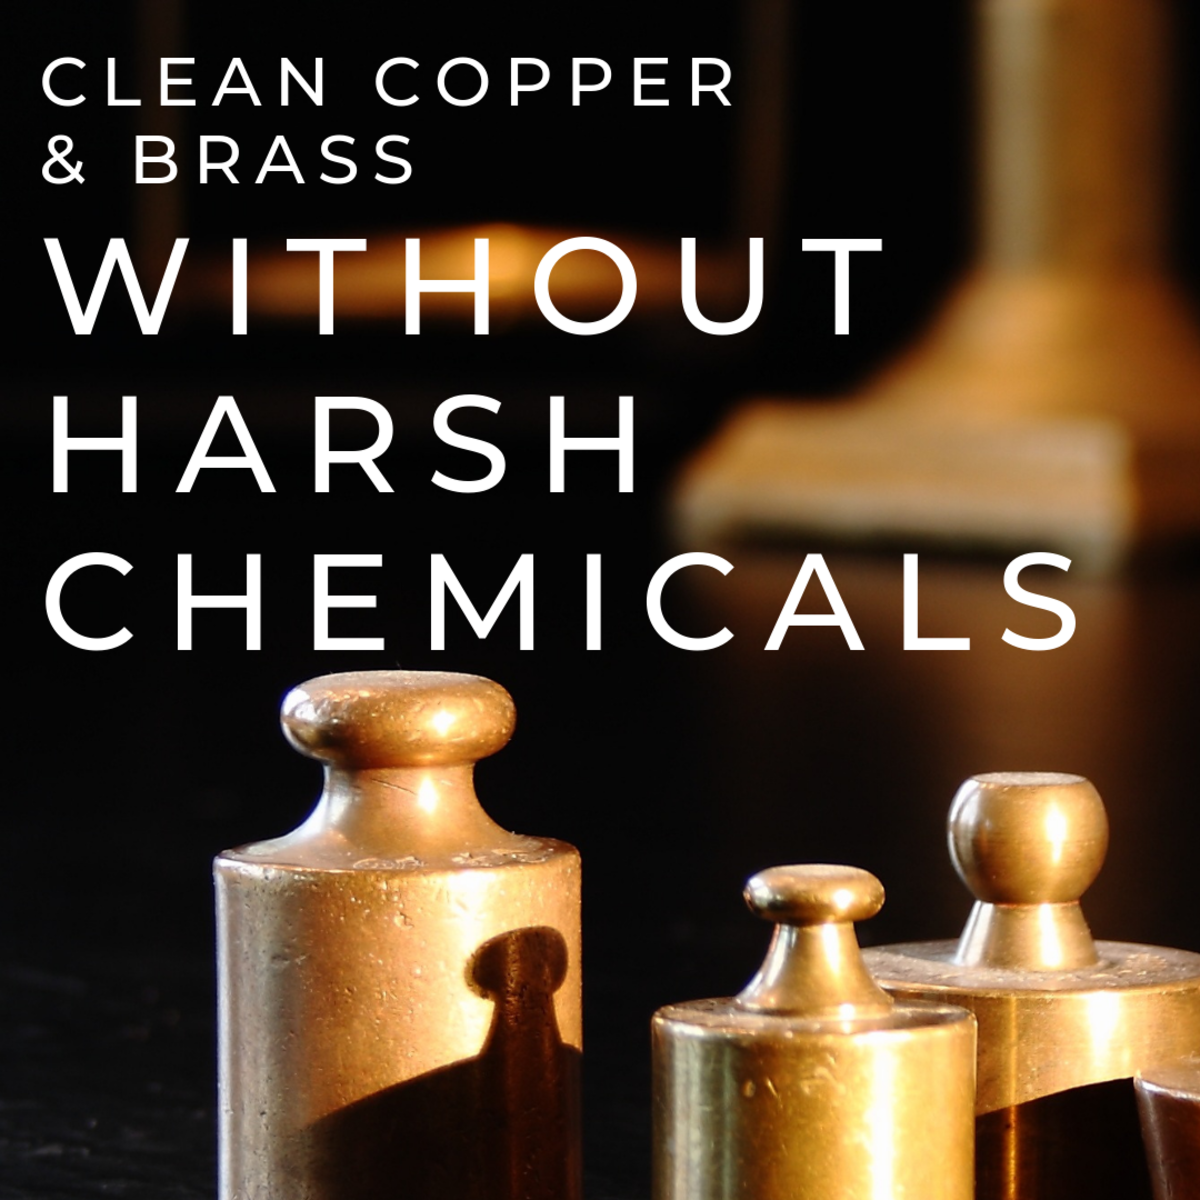 How To Clean Copper And Brass Without Chemicals Dengarden